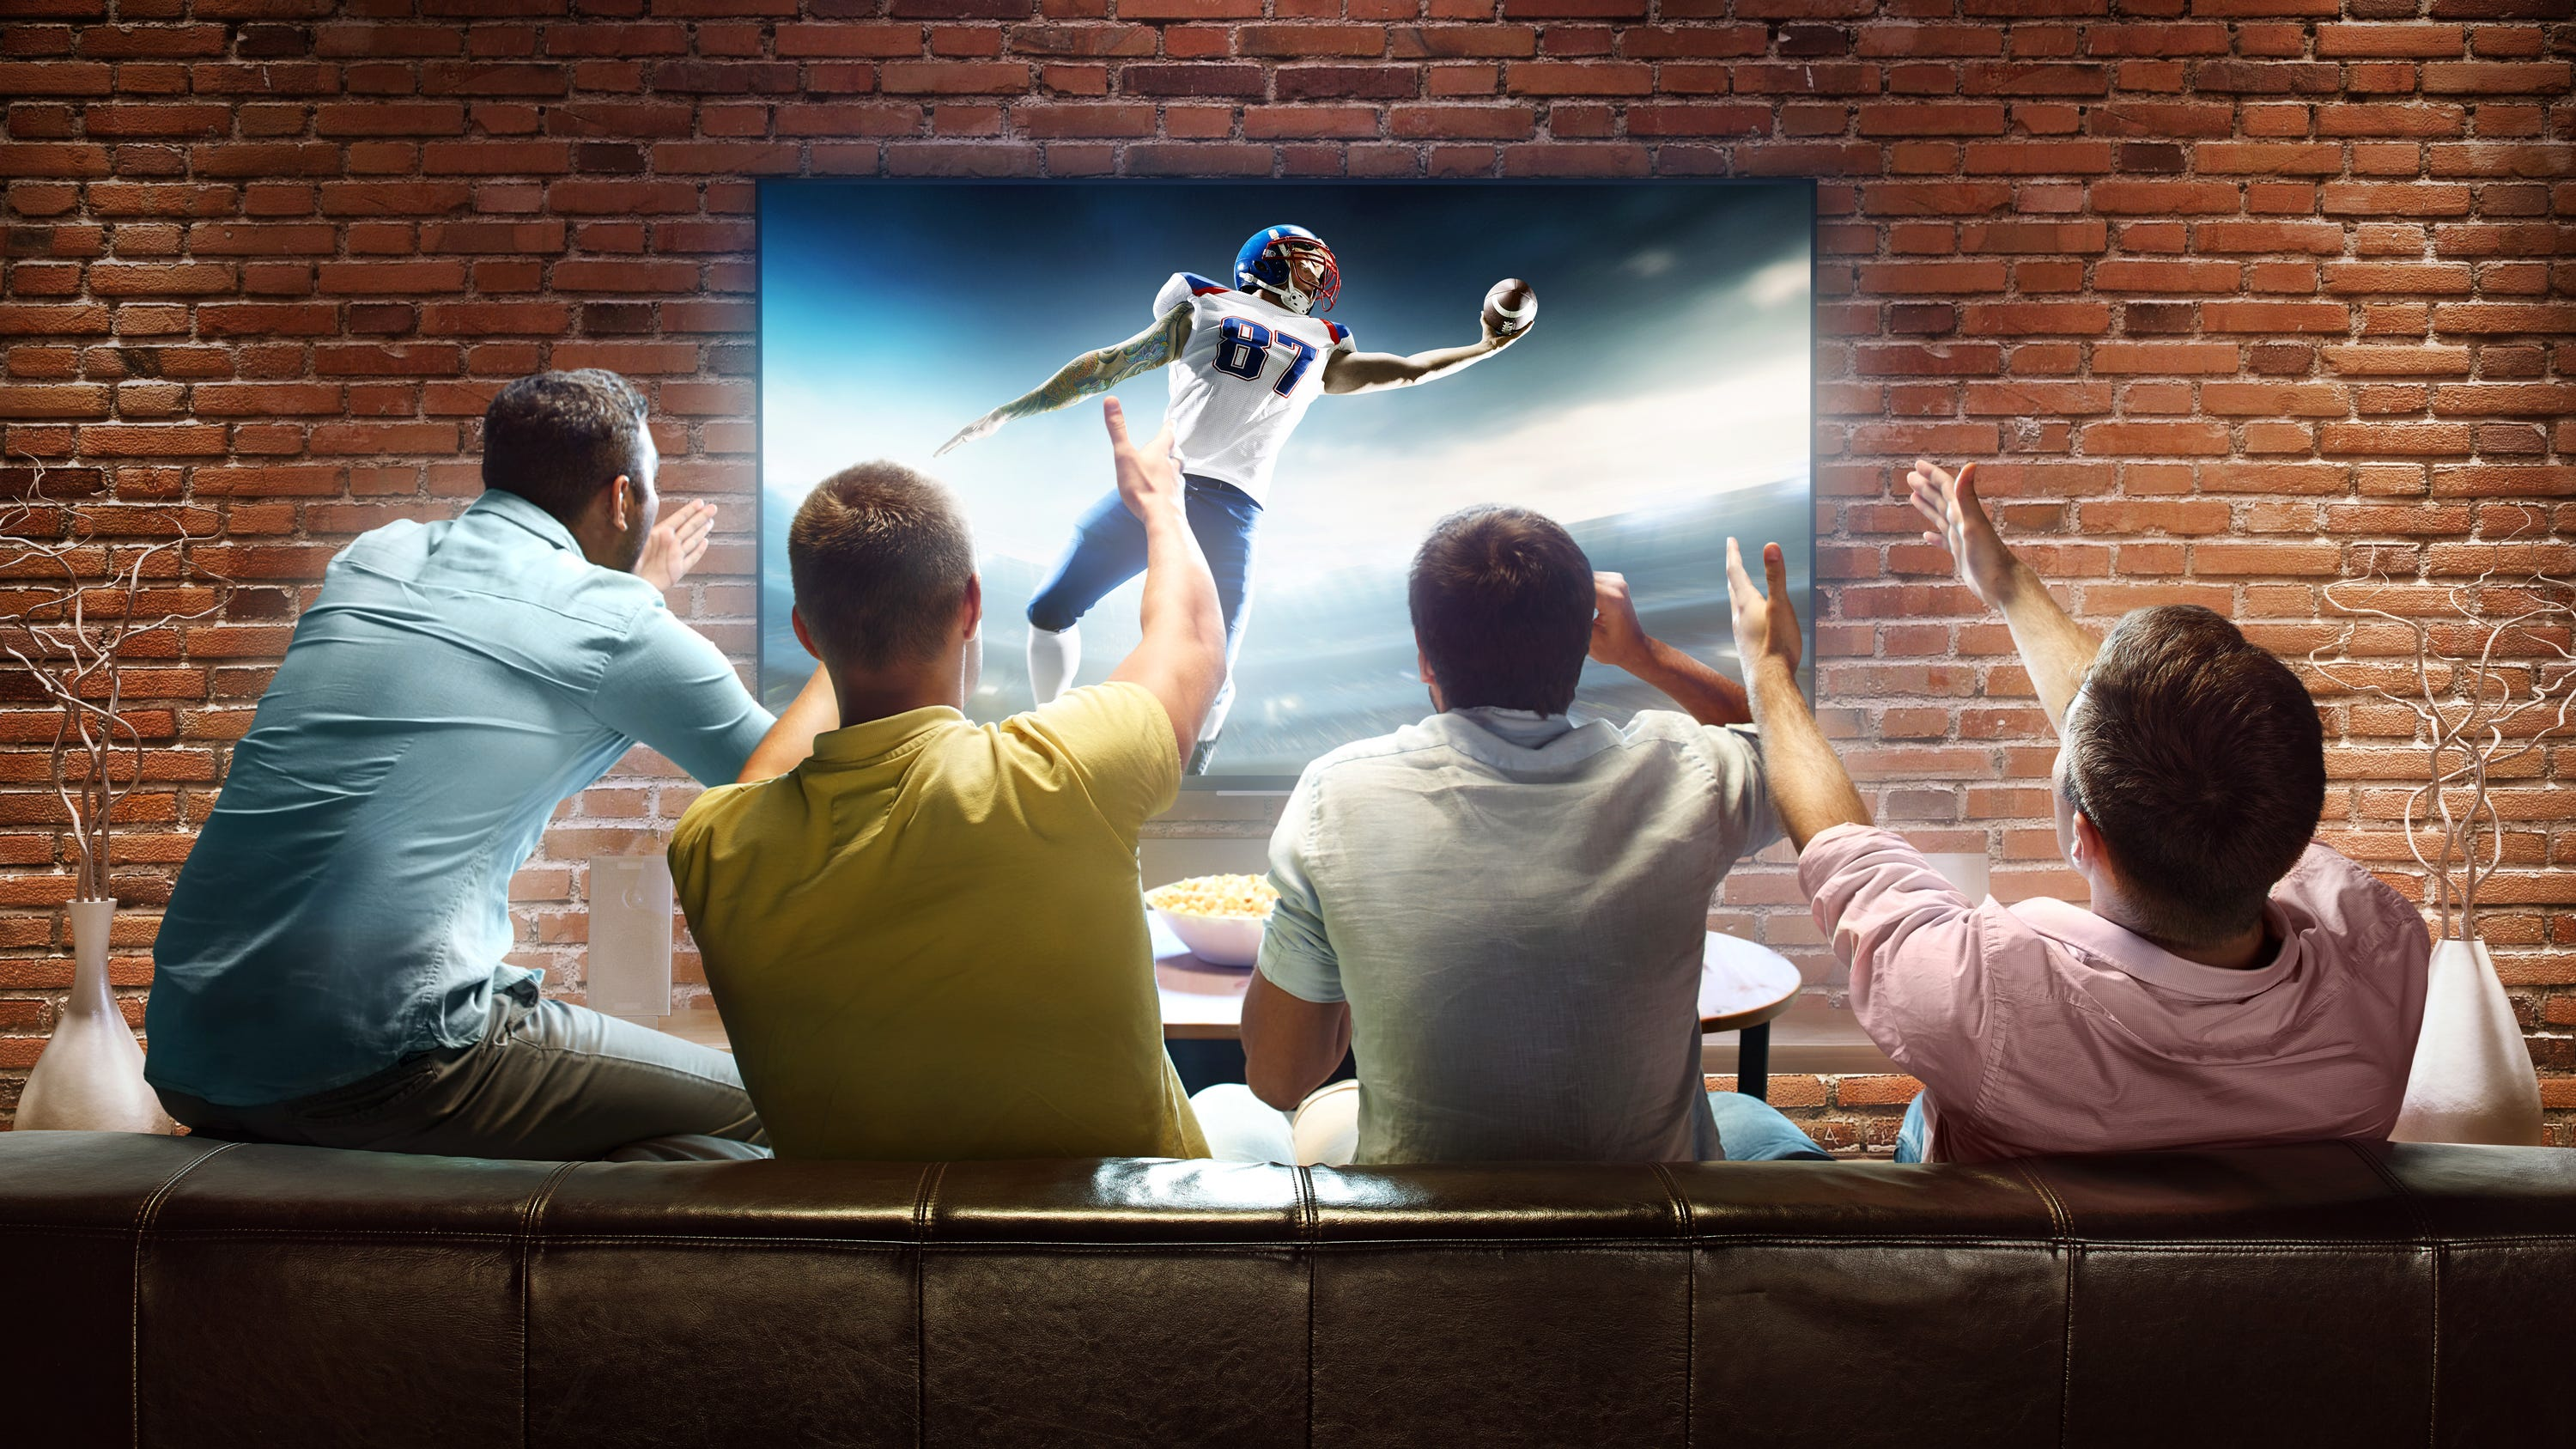 Score a great deal on one of these awesome TVs before the Super Bowl